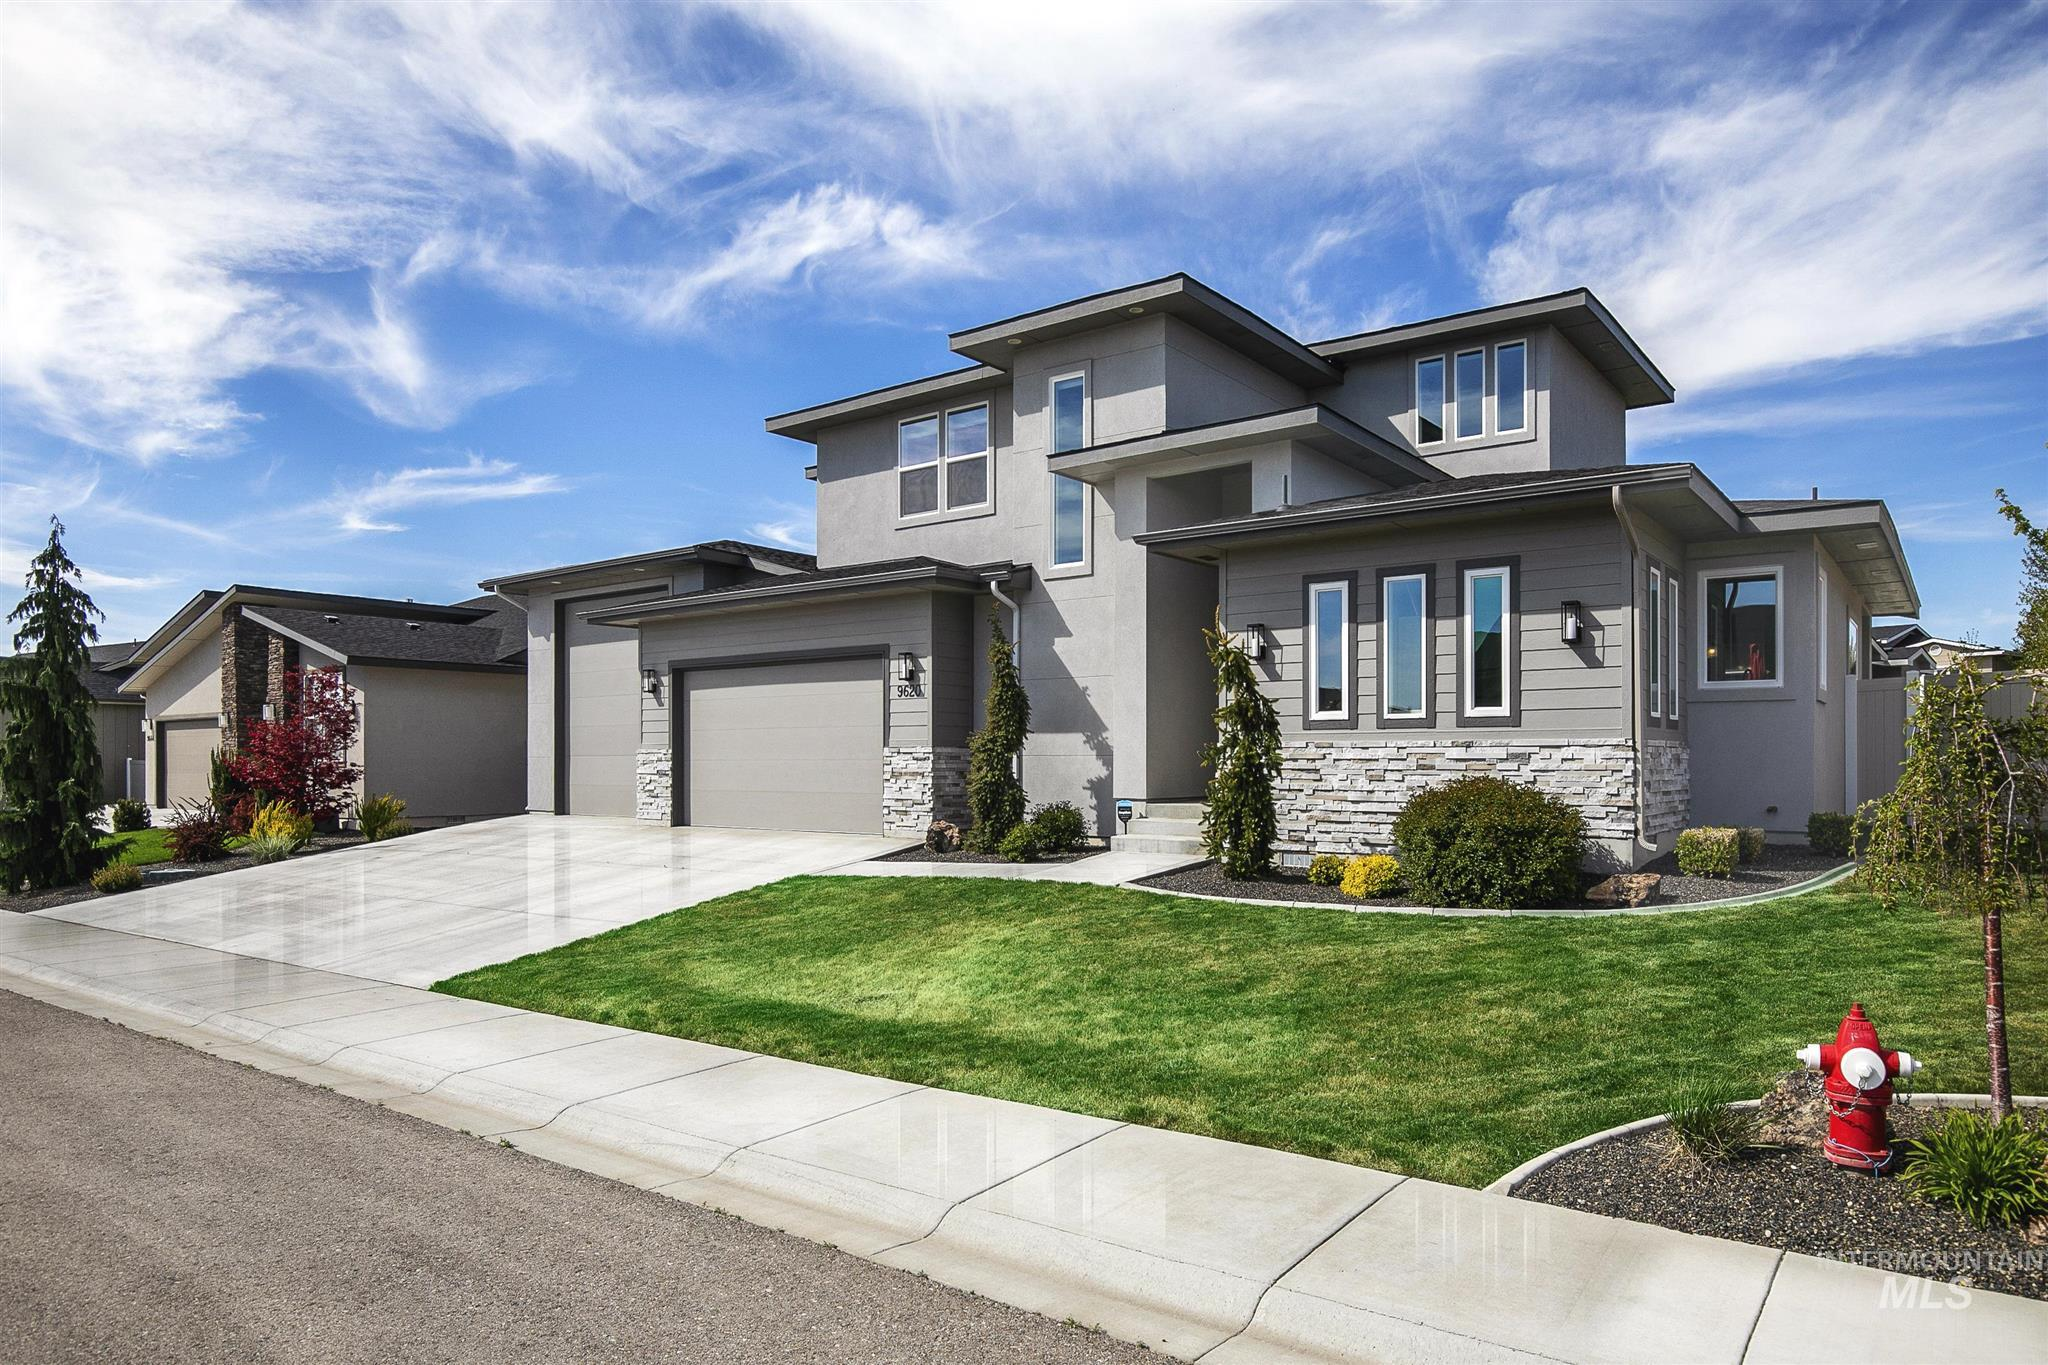 9620 W Snowcap Dr Property Photo - Boise, ID real estate listing